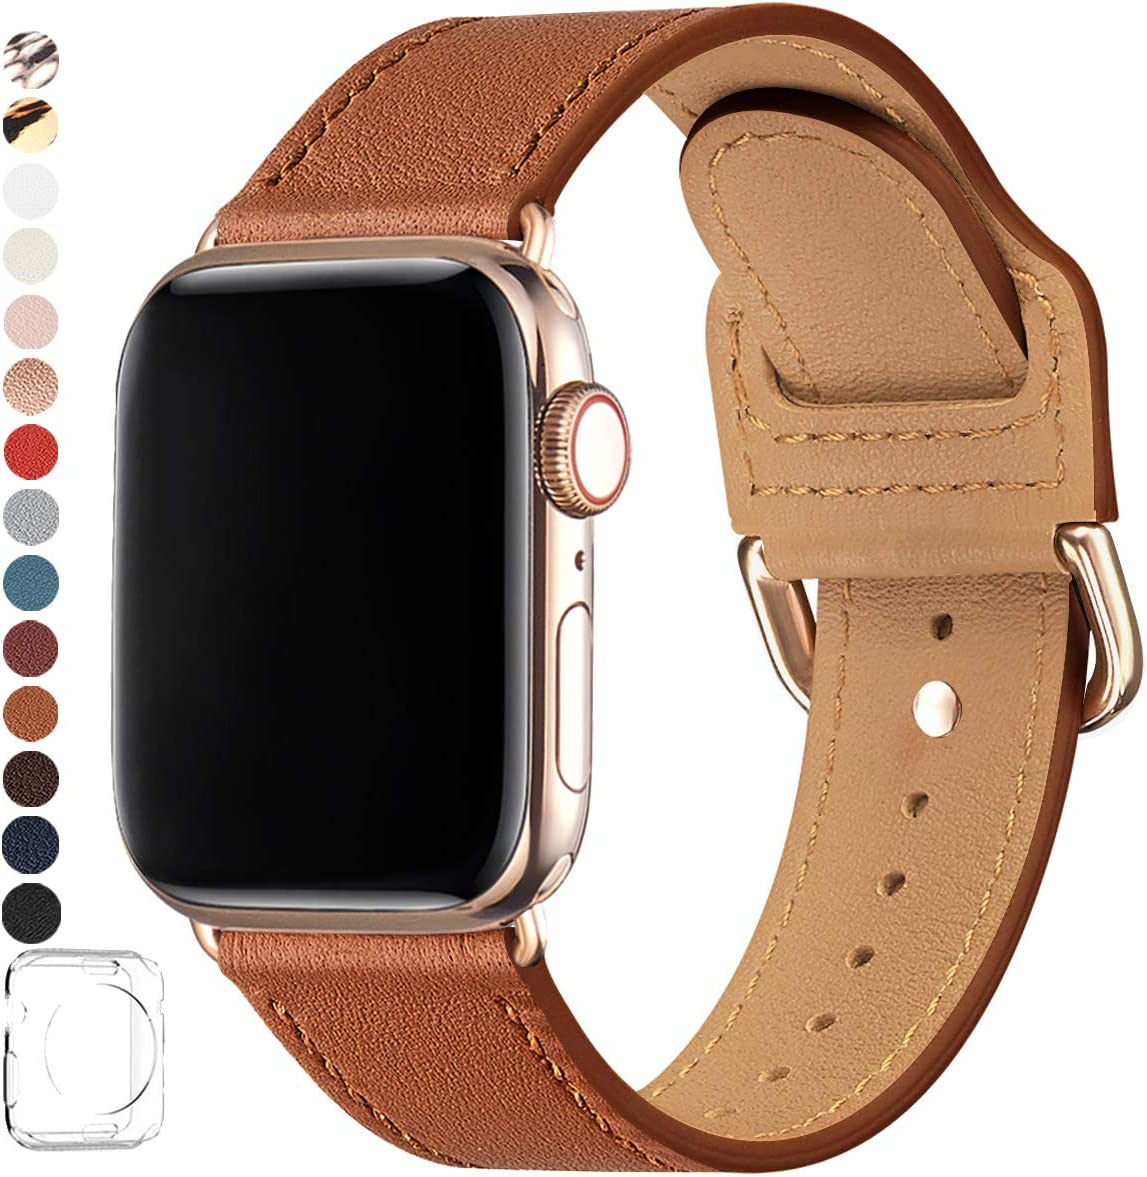 POWER PRIMACY Bands Compatible with Apple Watch Band 38mm 40mm 42mm 44mm, Top Grain Leather Smart Watch Strap Compatible for Men Women iWatch Series 6 5 4 3 2 1,SE (Brown/Gold, 42mm/44mm)